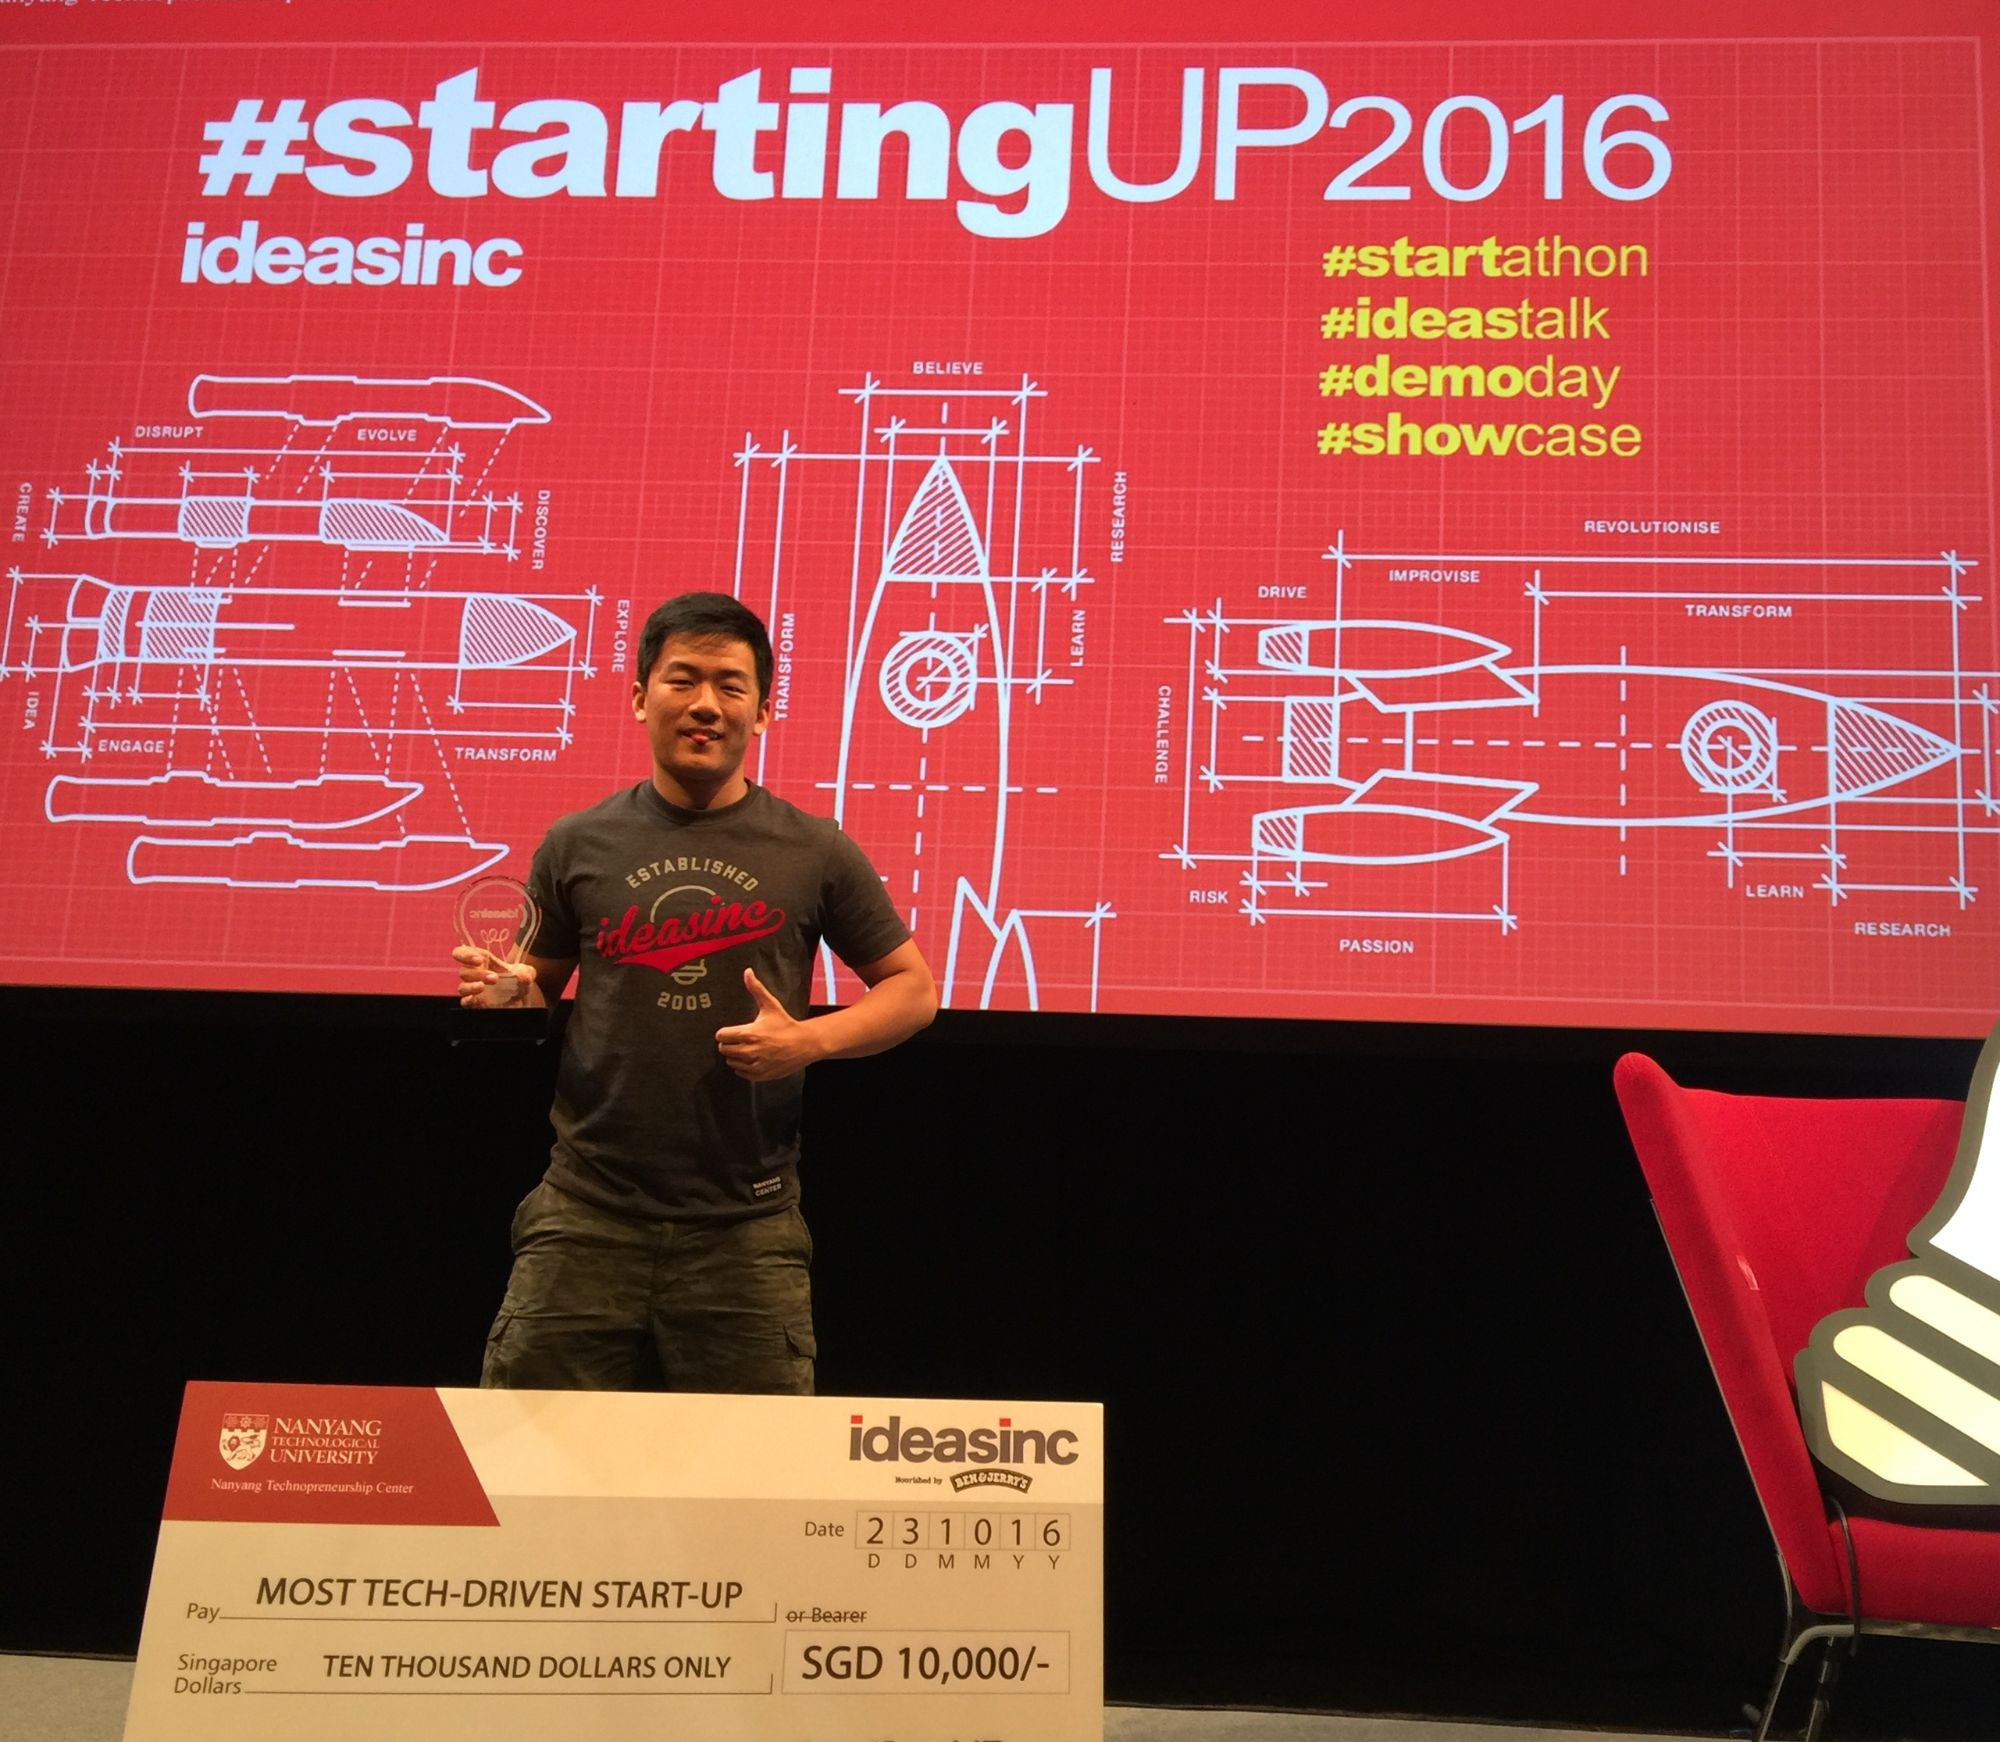 SUSTech graduate Cheng Qijia wins Most Tech-Driven Startup Award in IDEASINC #startingUP 2016